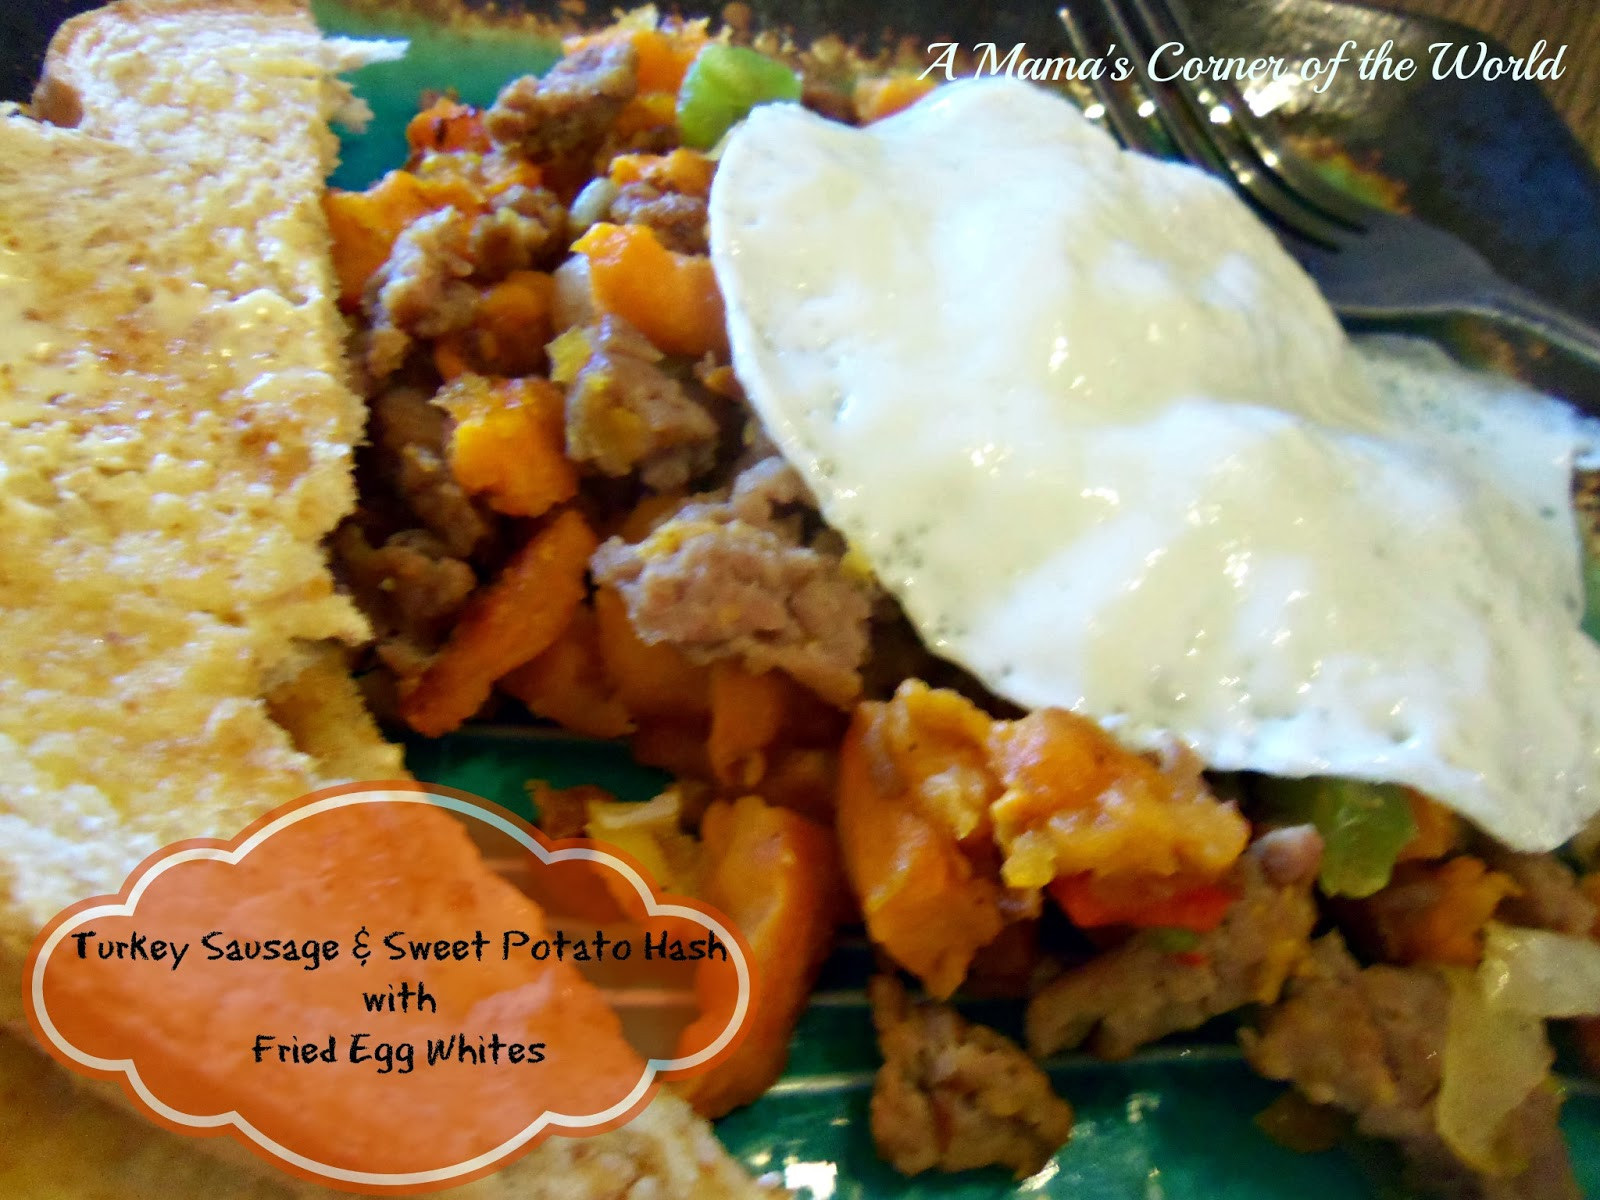 Healthy Turkey Sausage Recipe  Healthy Breakfast Recipe Turkey Sausage and Sweet Potato